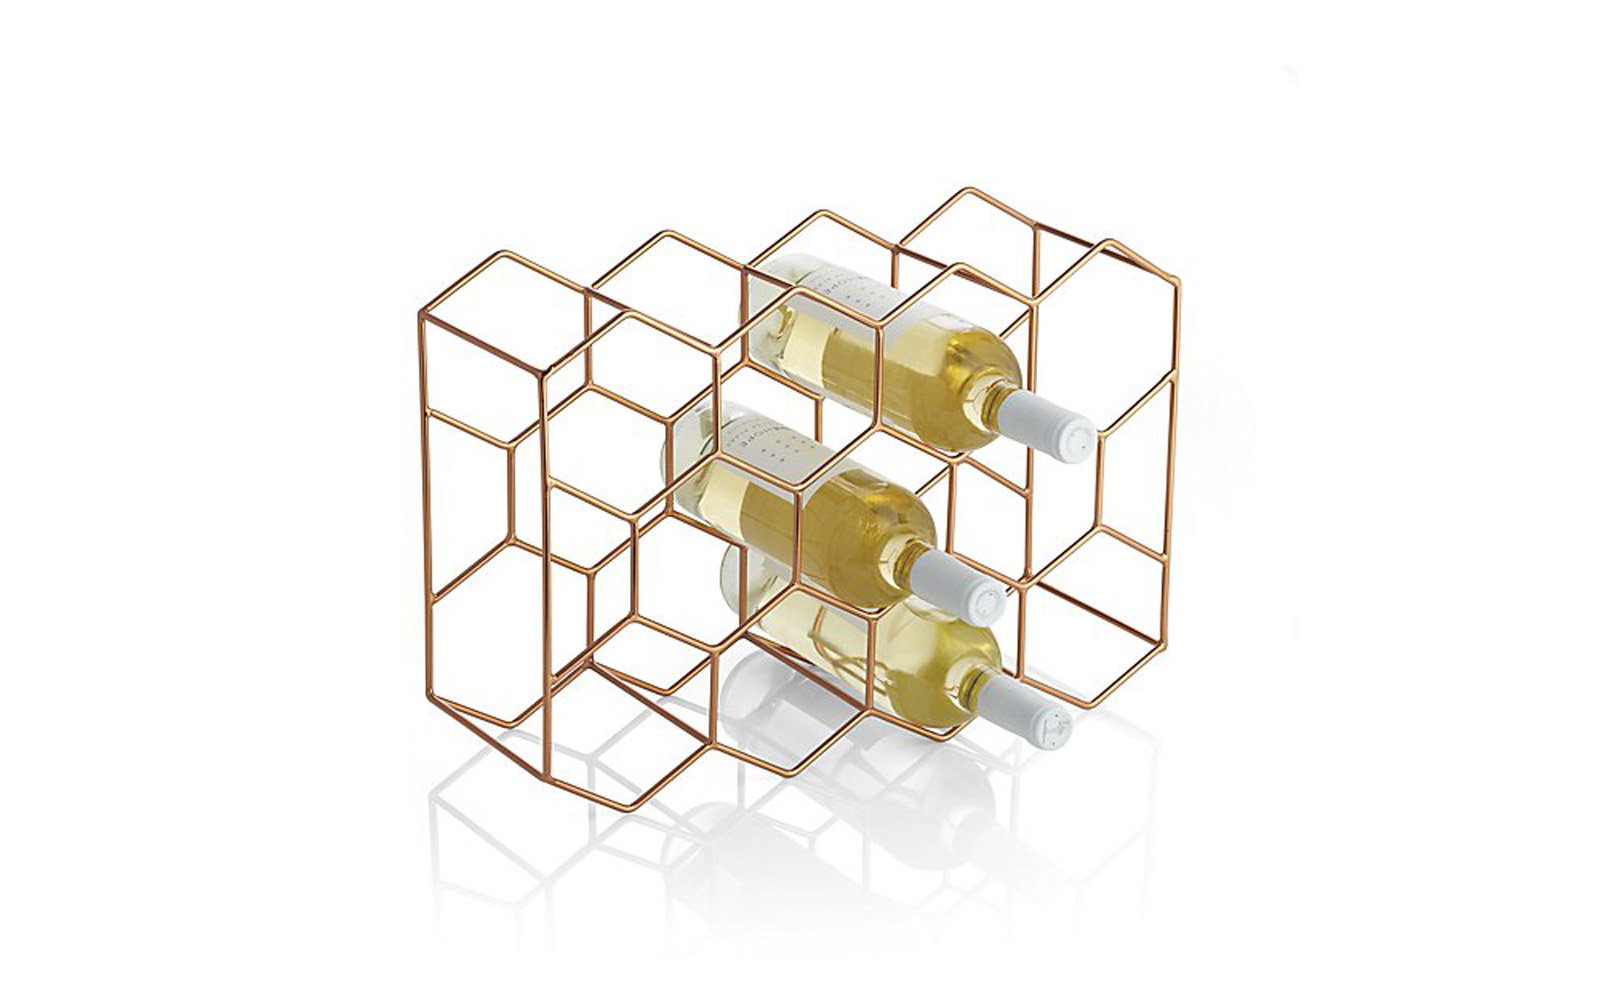 Crate and Barrel 11-Bottle Wine Rack Copper